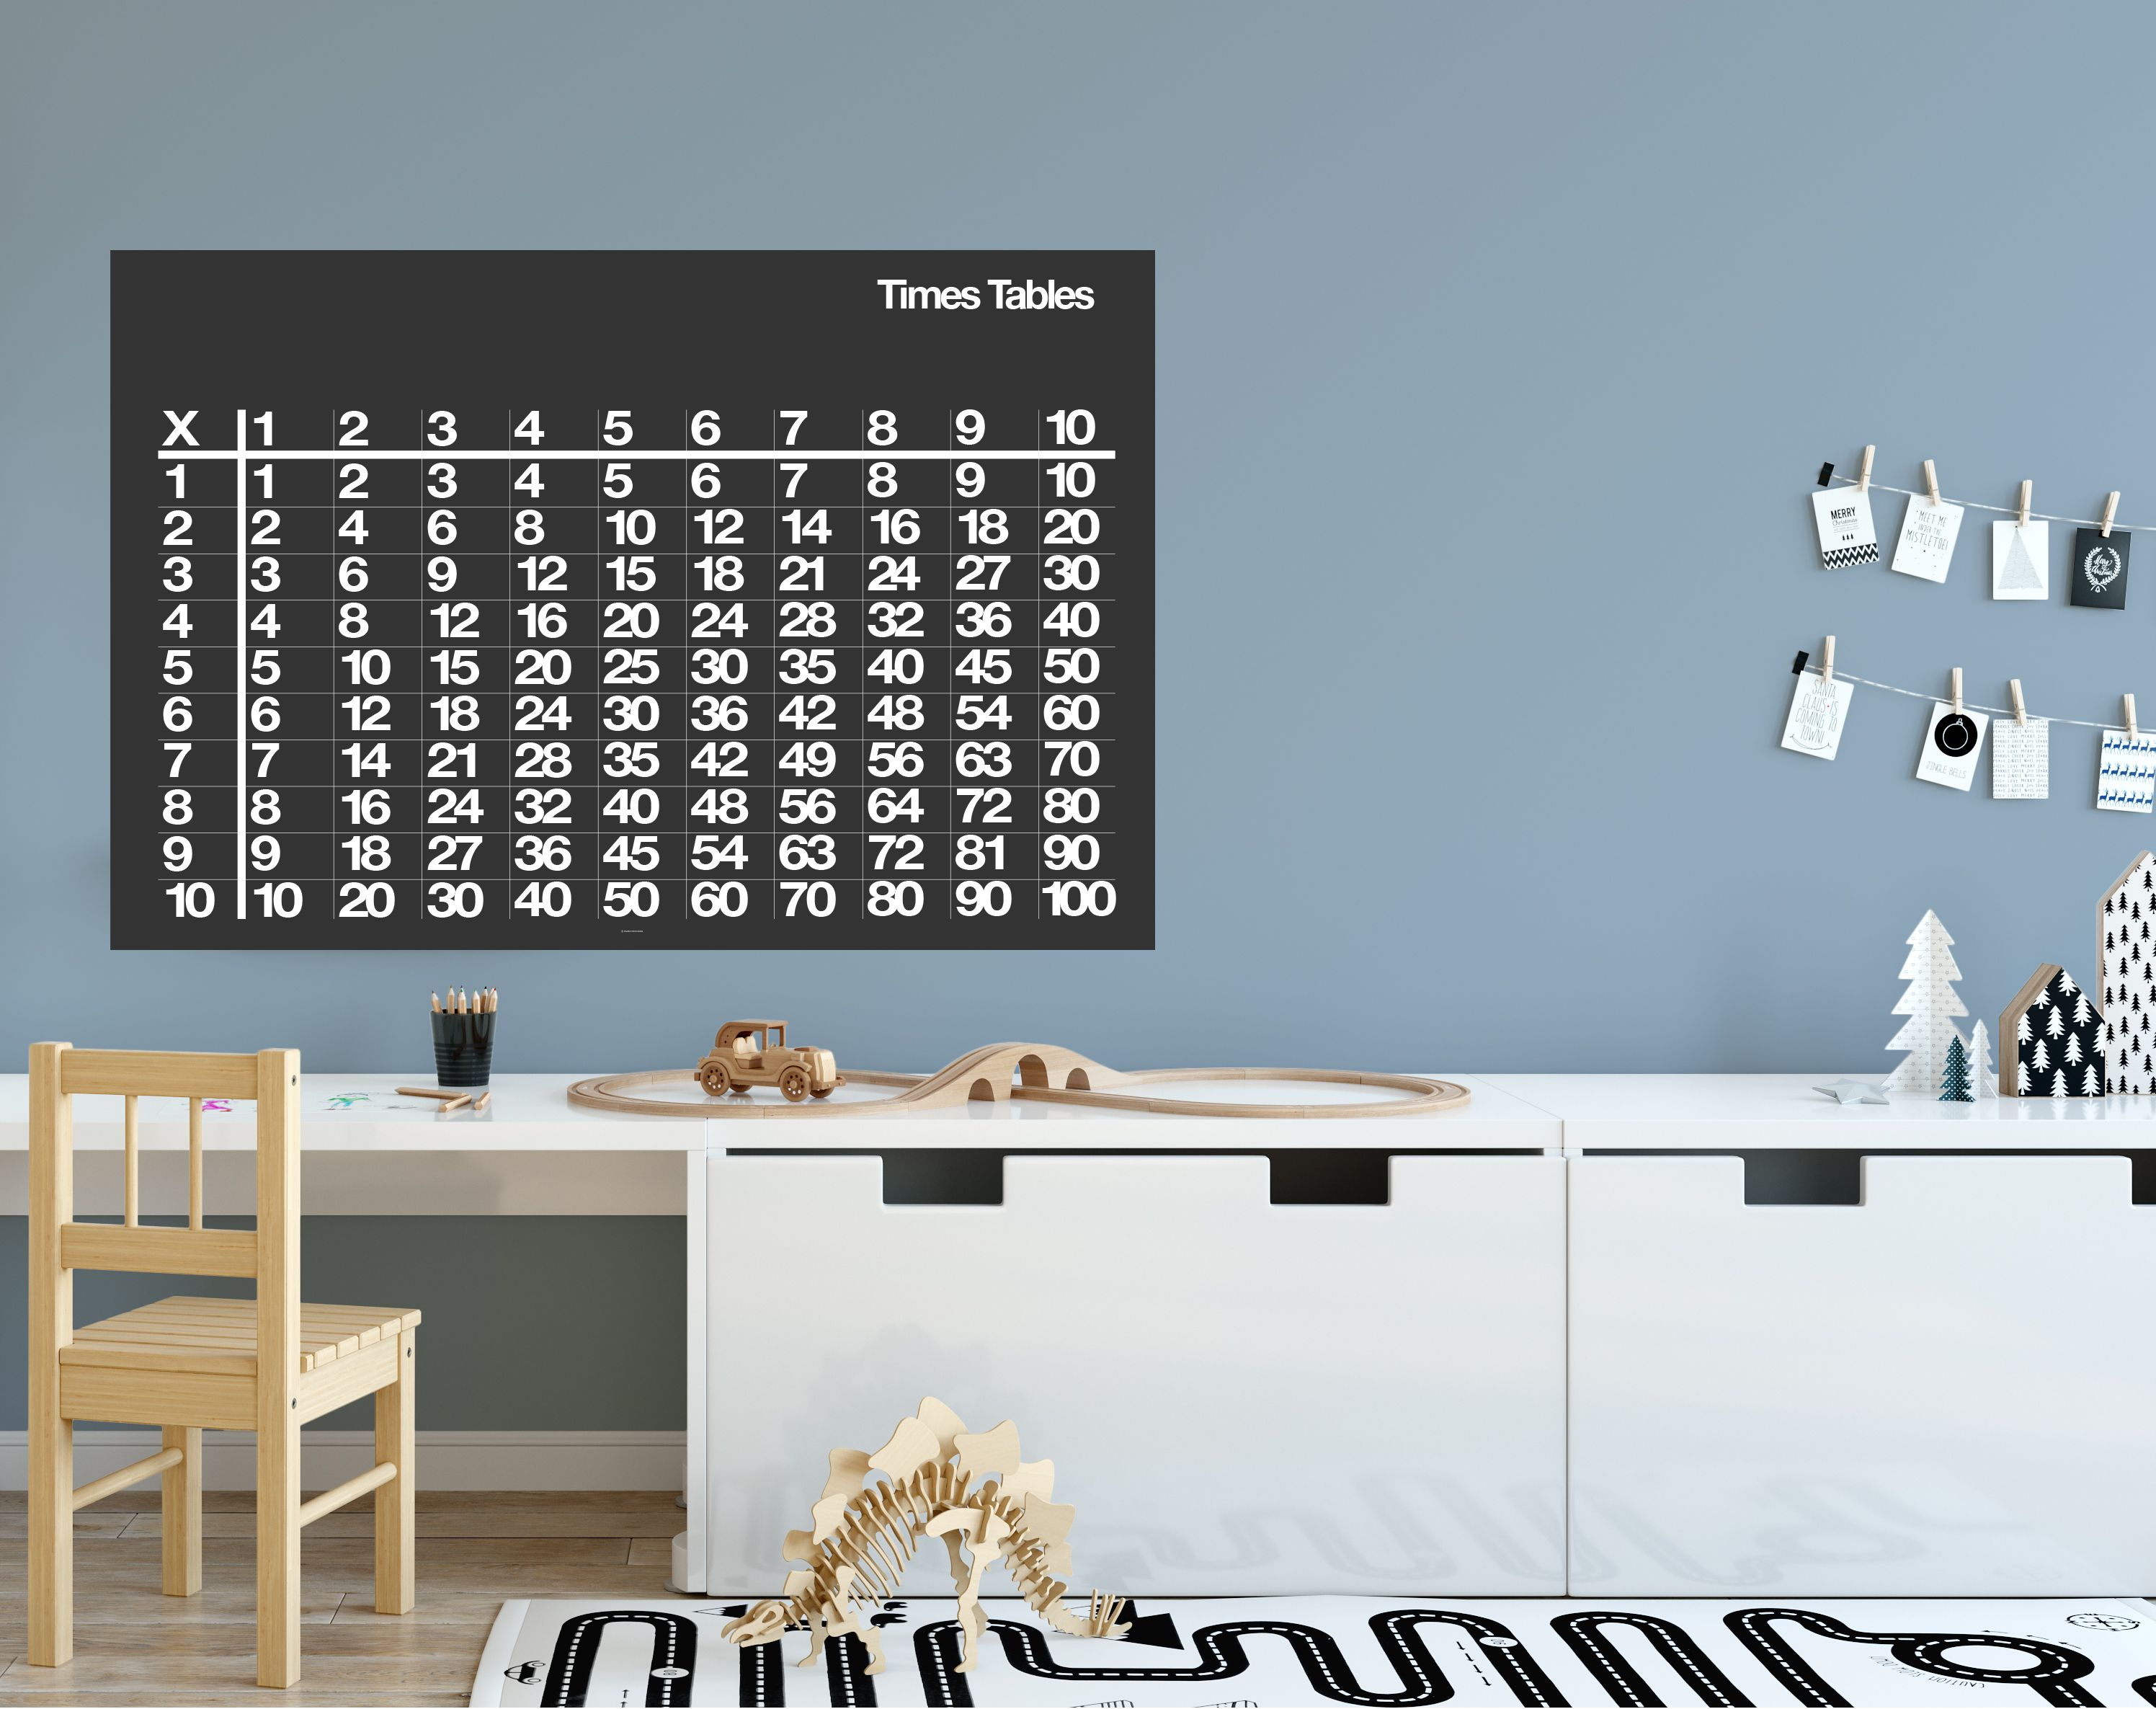 Prints For Kids Playroom Art Mathematics Math Print Table Times Time School Study Room